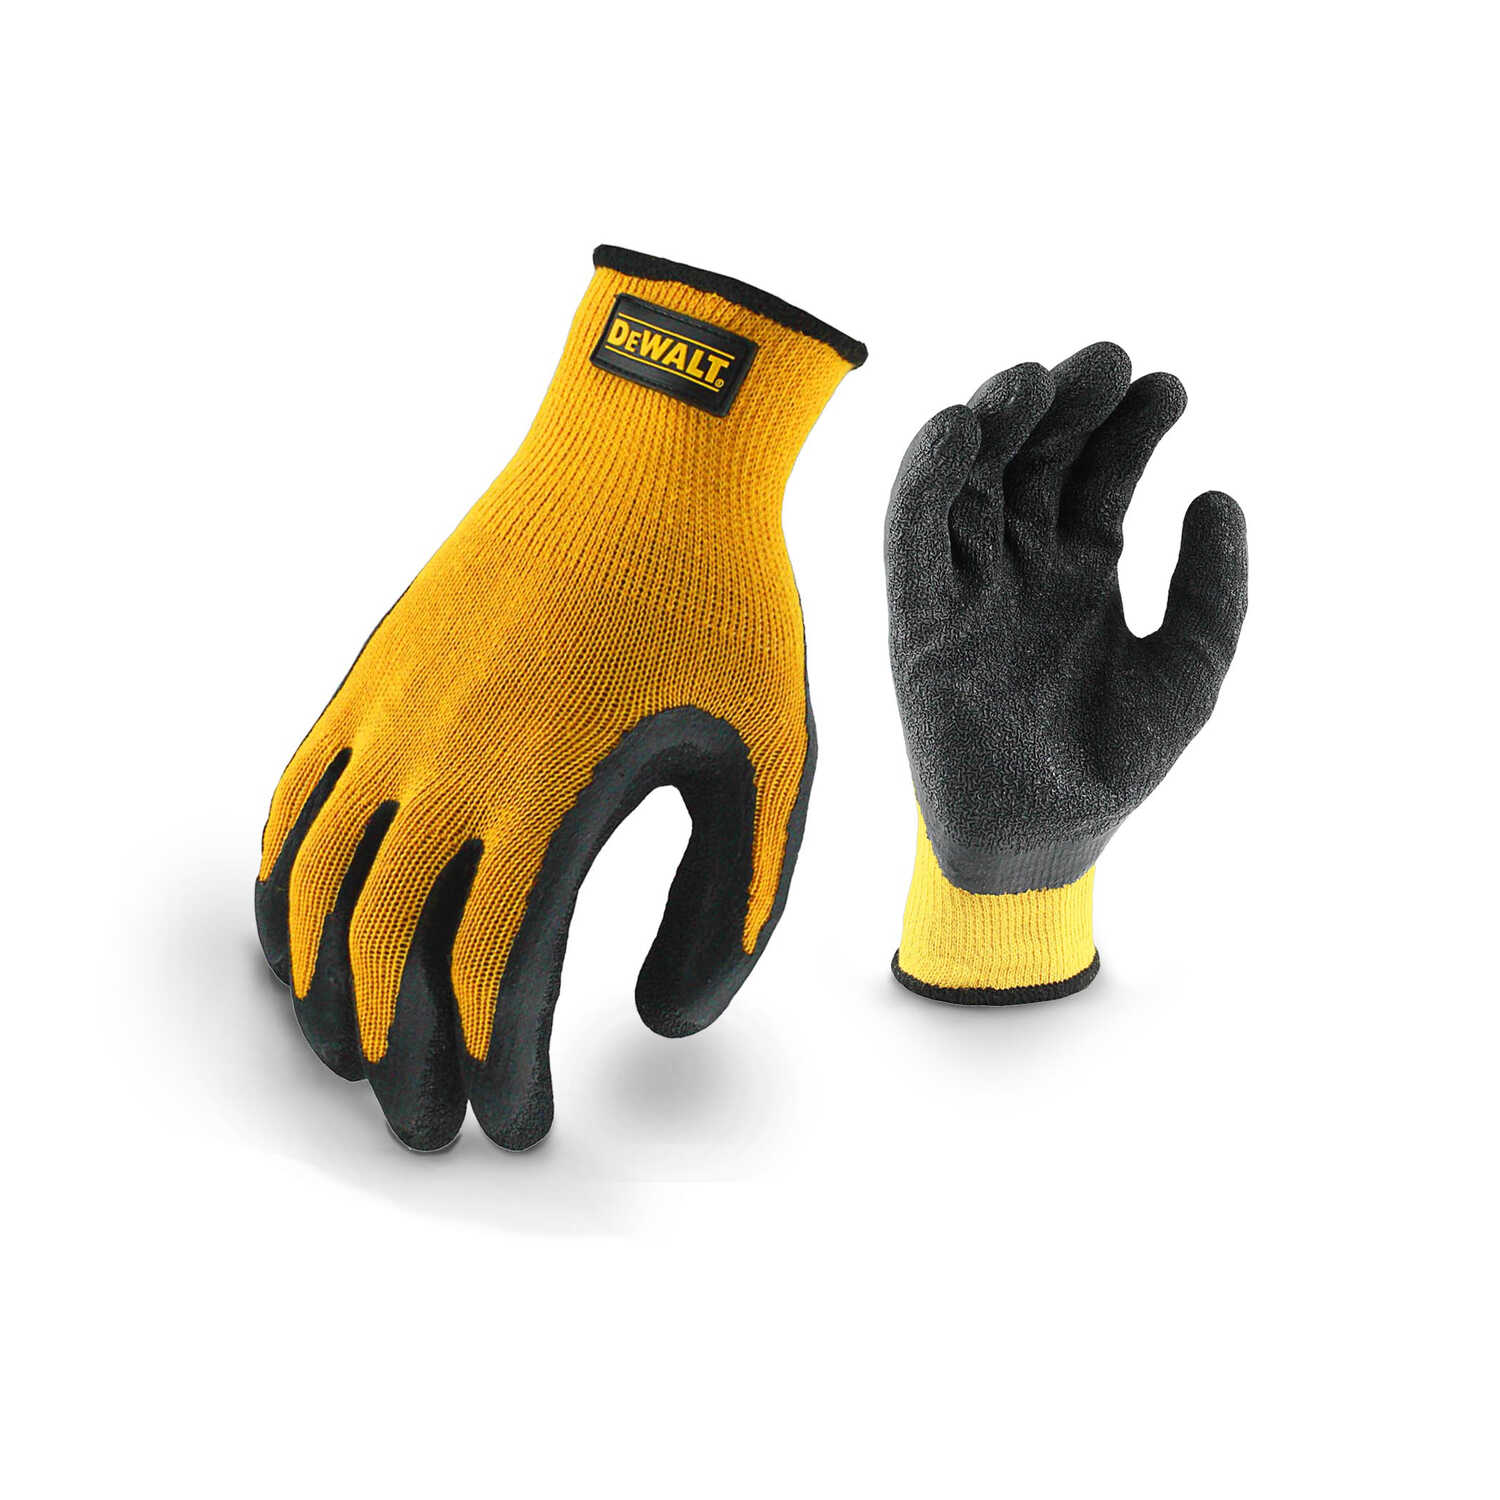 DeWalt  Radians  Unisex  Rubber  Grip  Gloves  Black/Yellow  XL